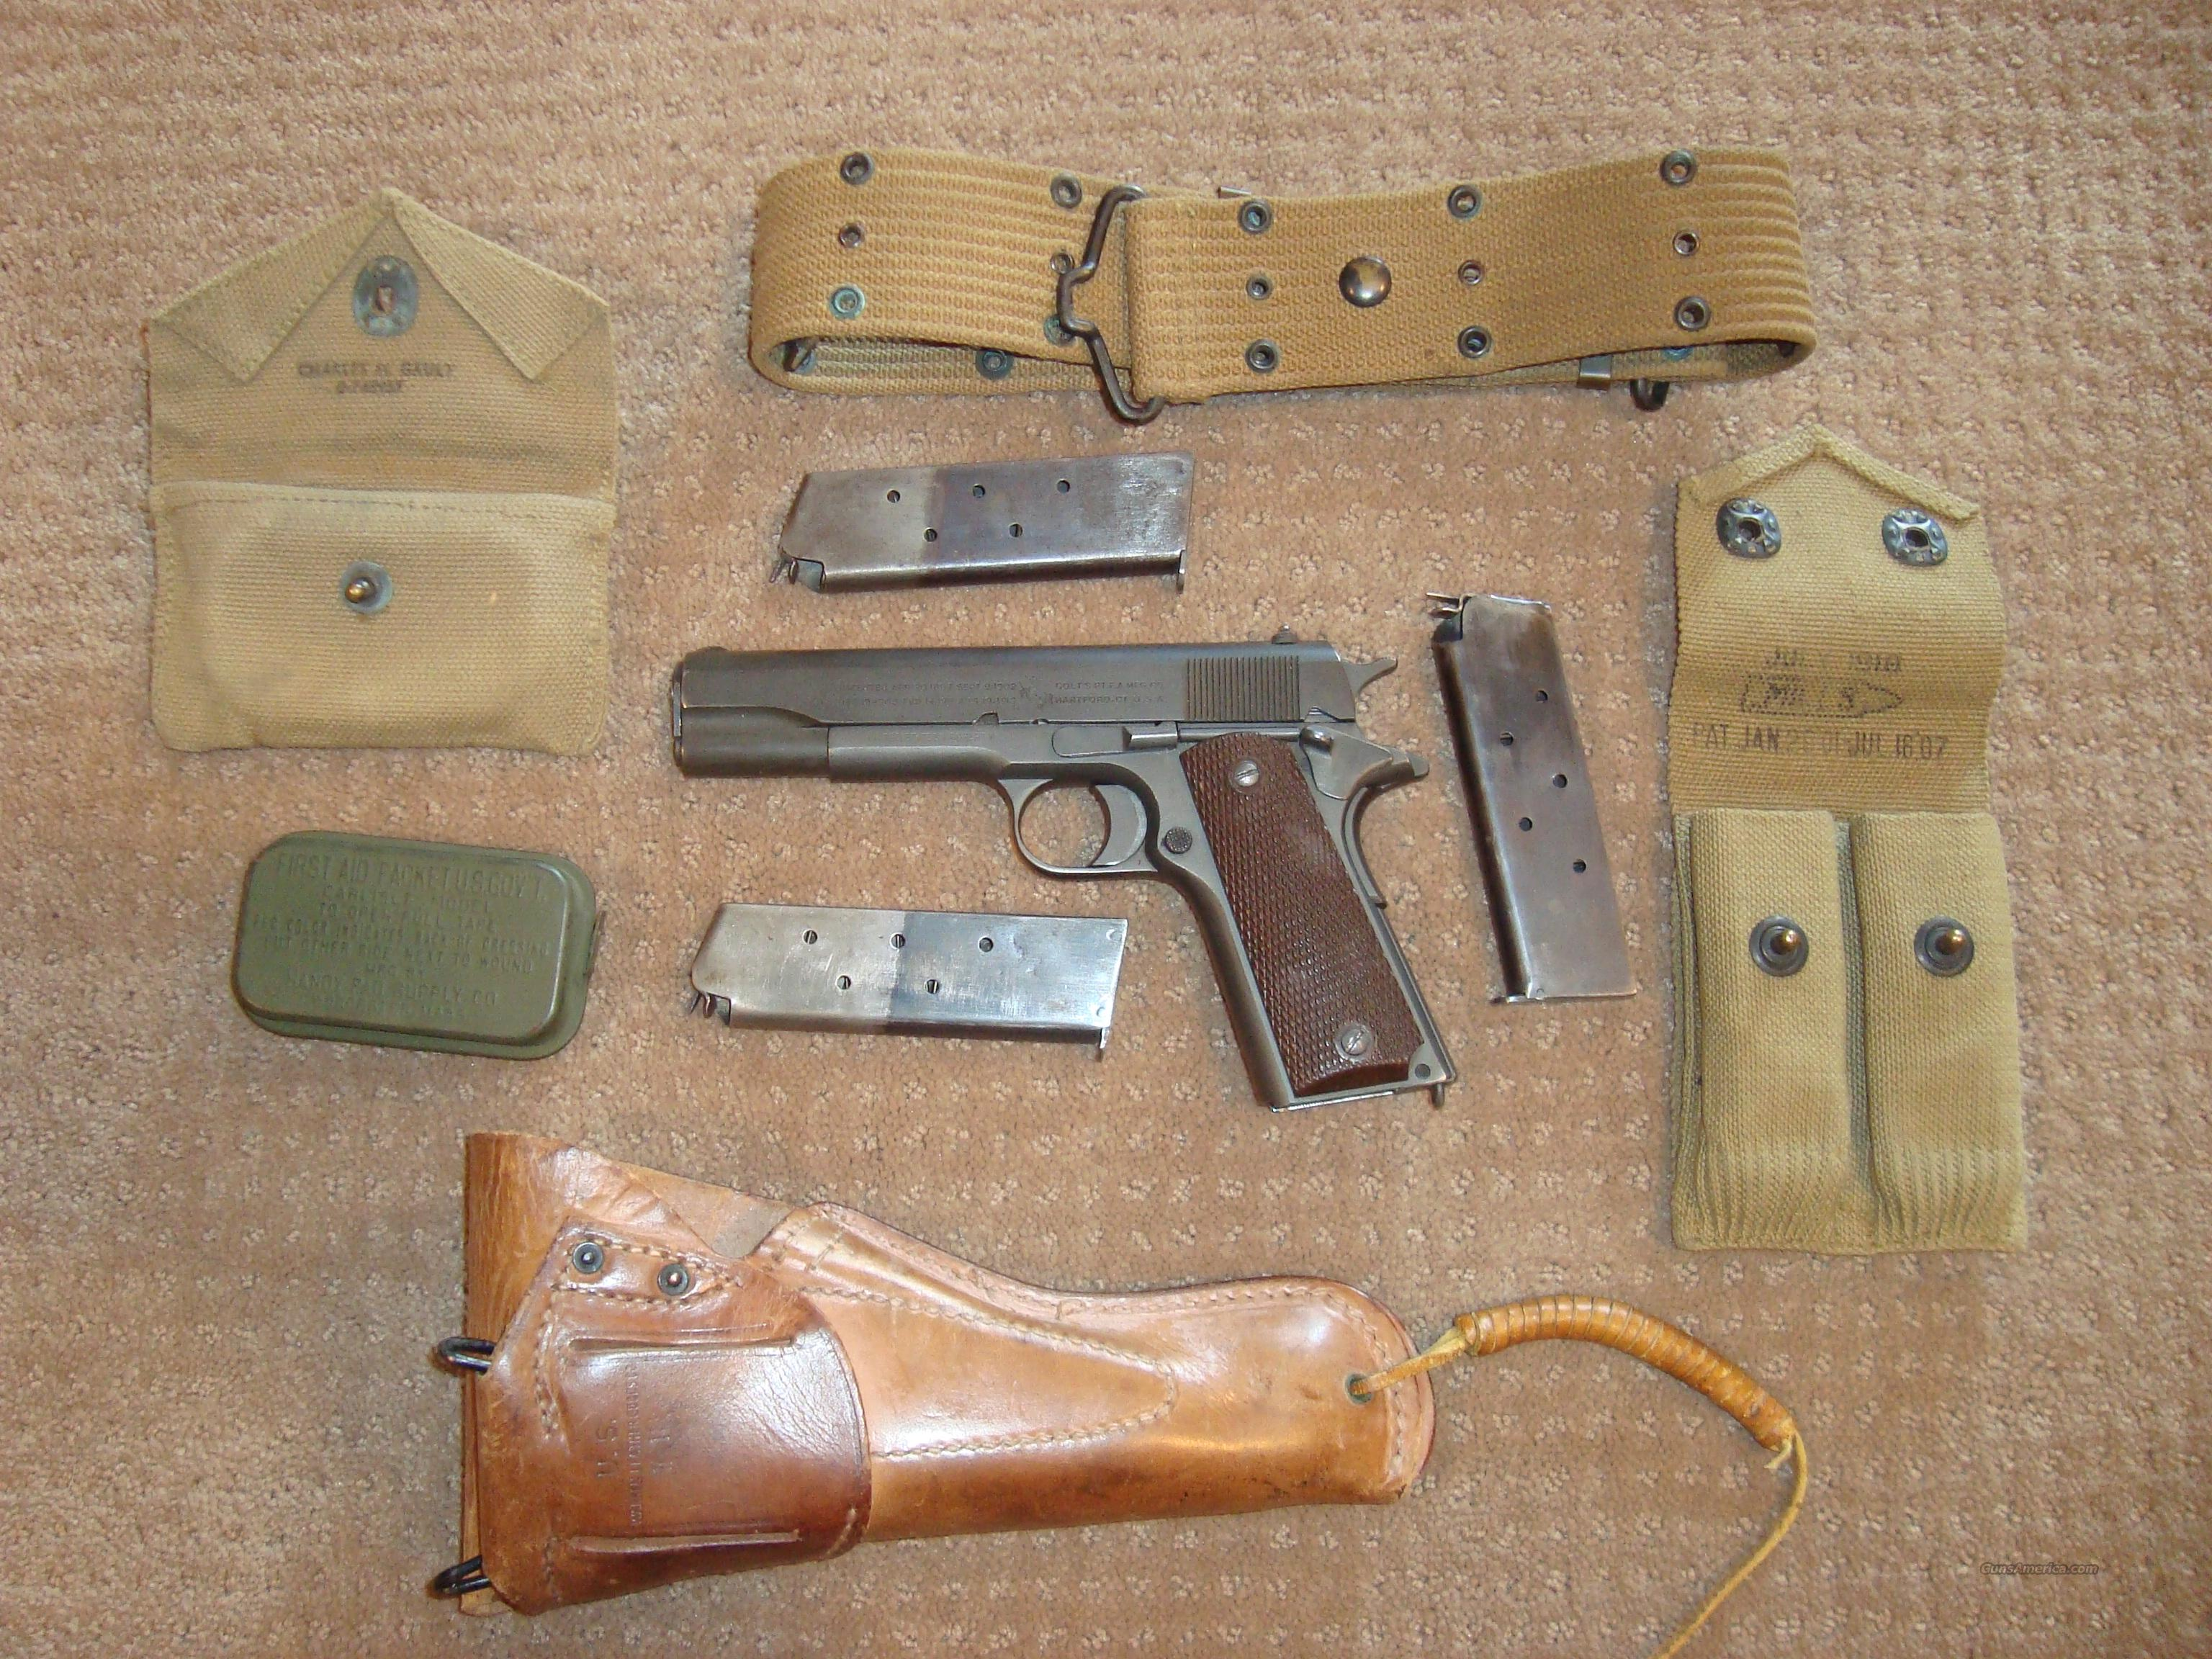 COMPLETE COLT 1911 RIG - WW2 WITH HOLSTER, BELT... for sale